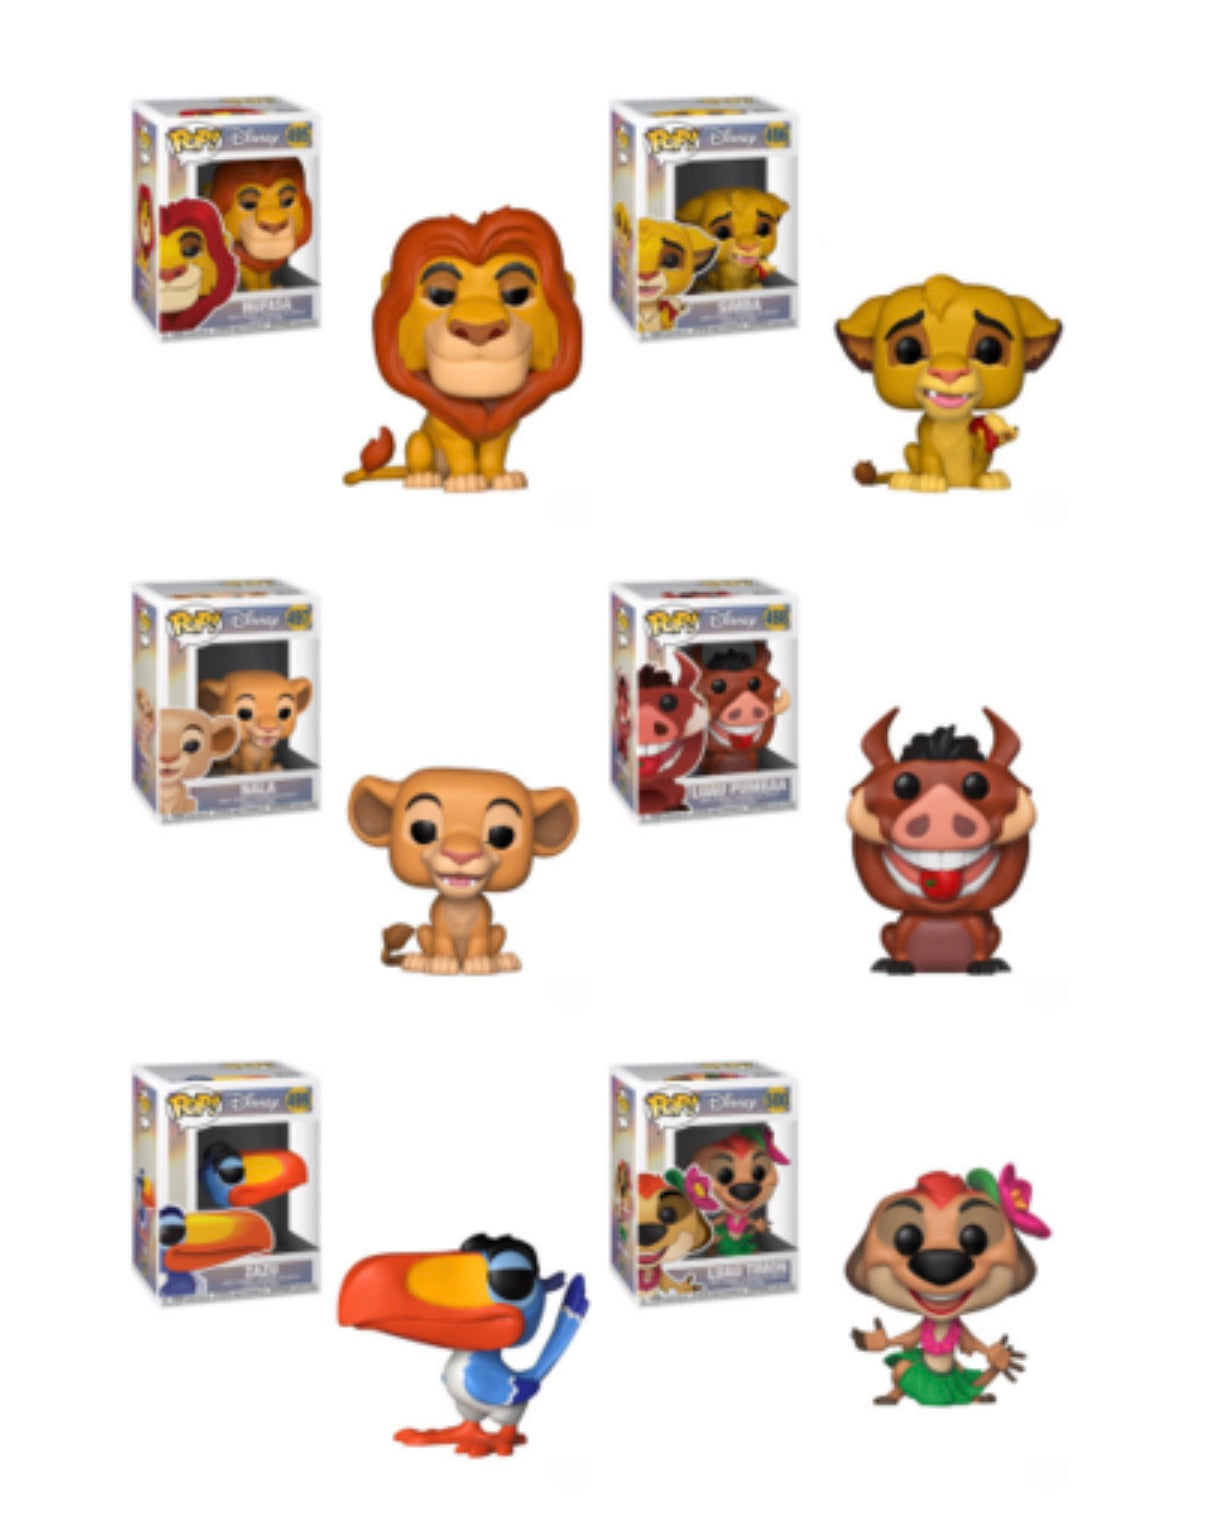 THE LION KING FUNKO POP! COMPLETE SET OF 6 (PRE-ORDER)